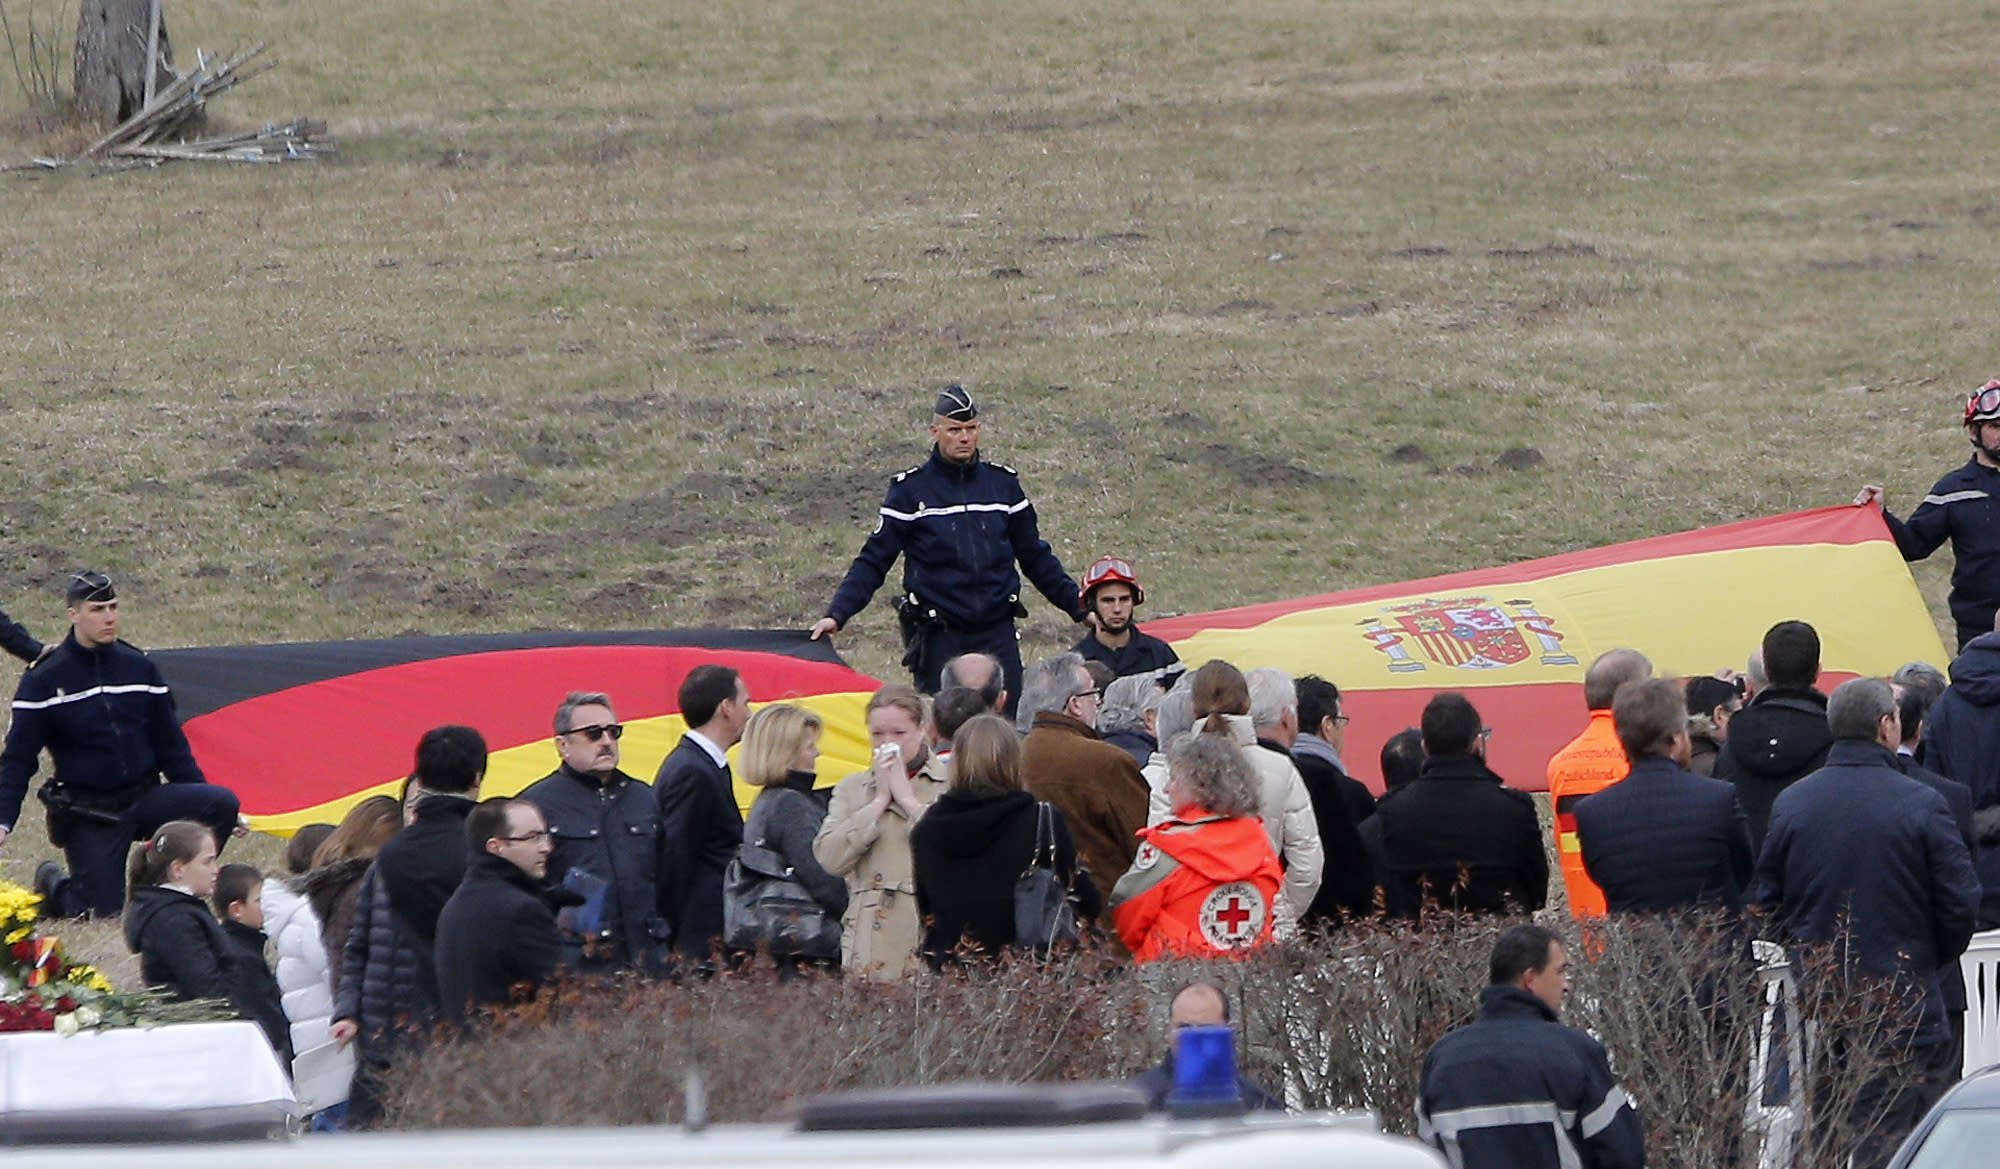 Co-pilot 'intentionally' destroyed plane, prosecutor says